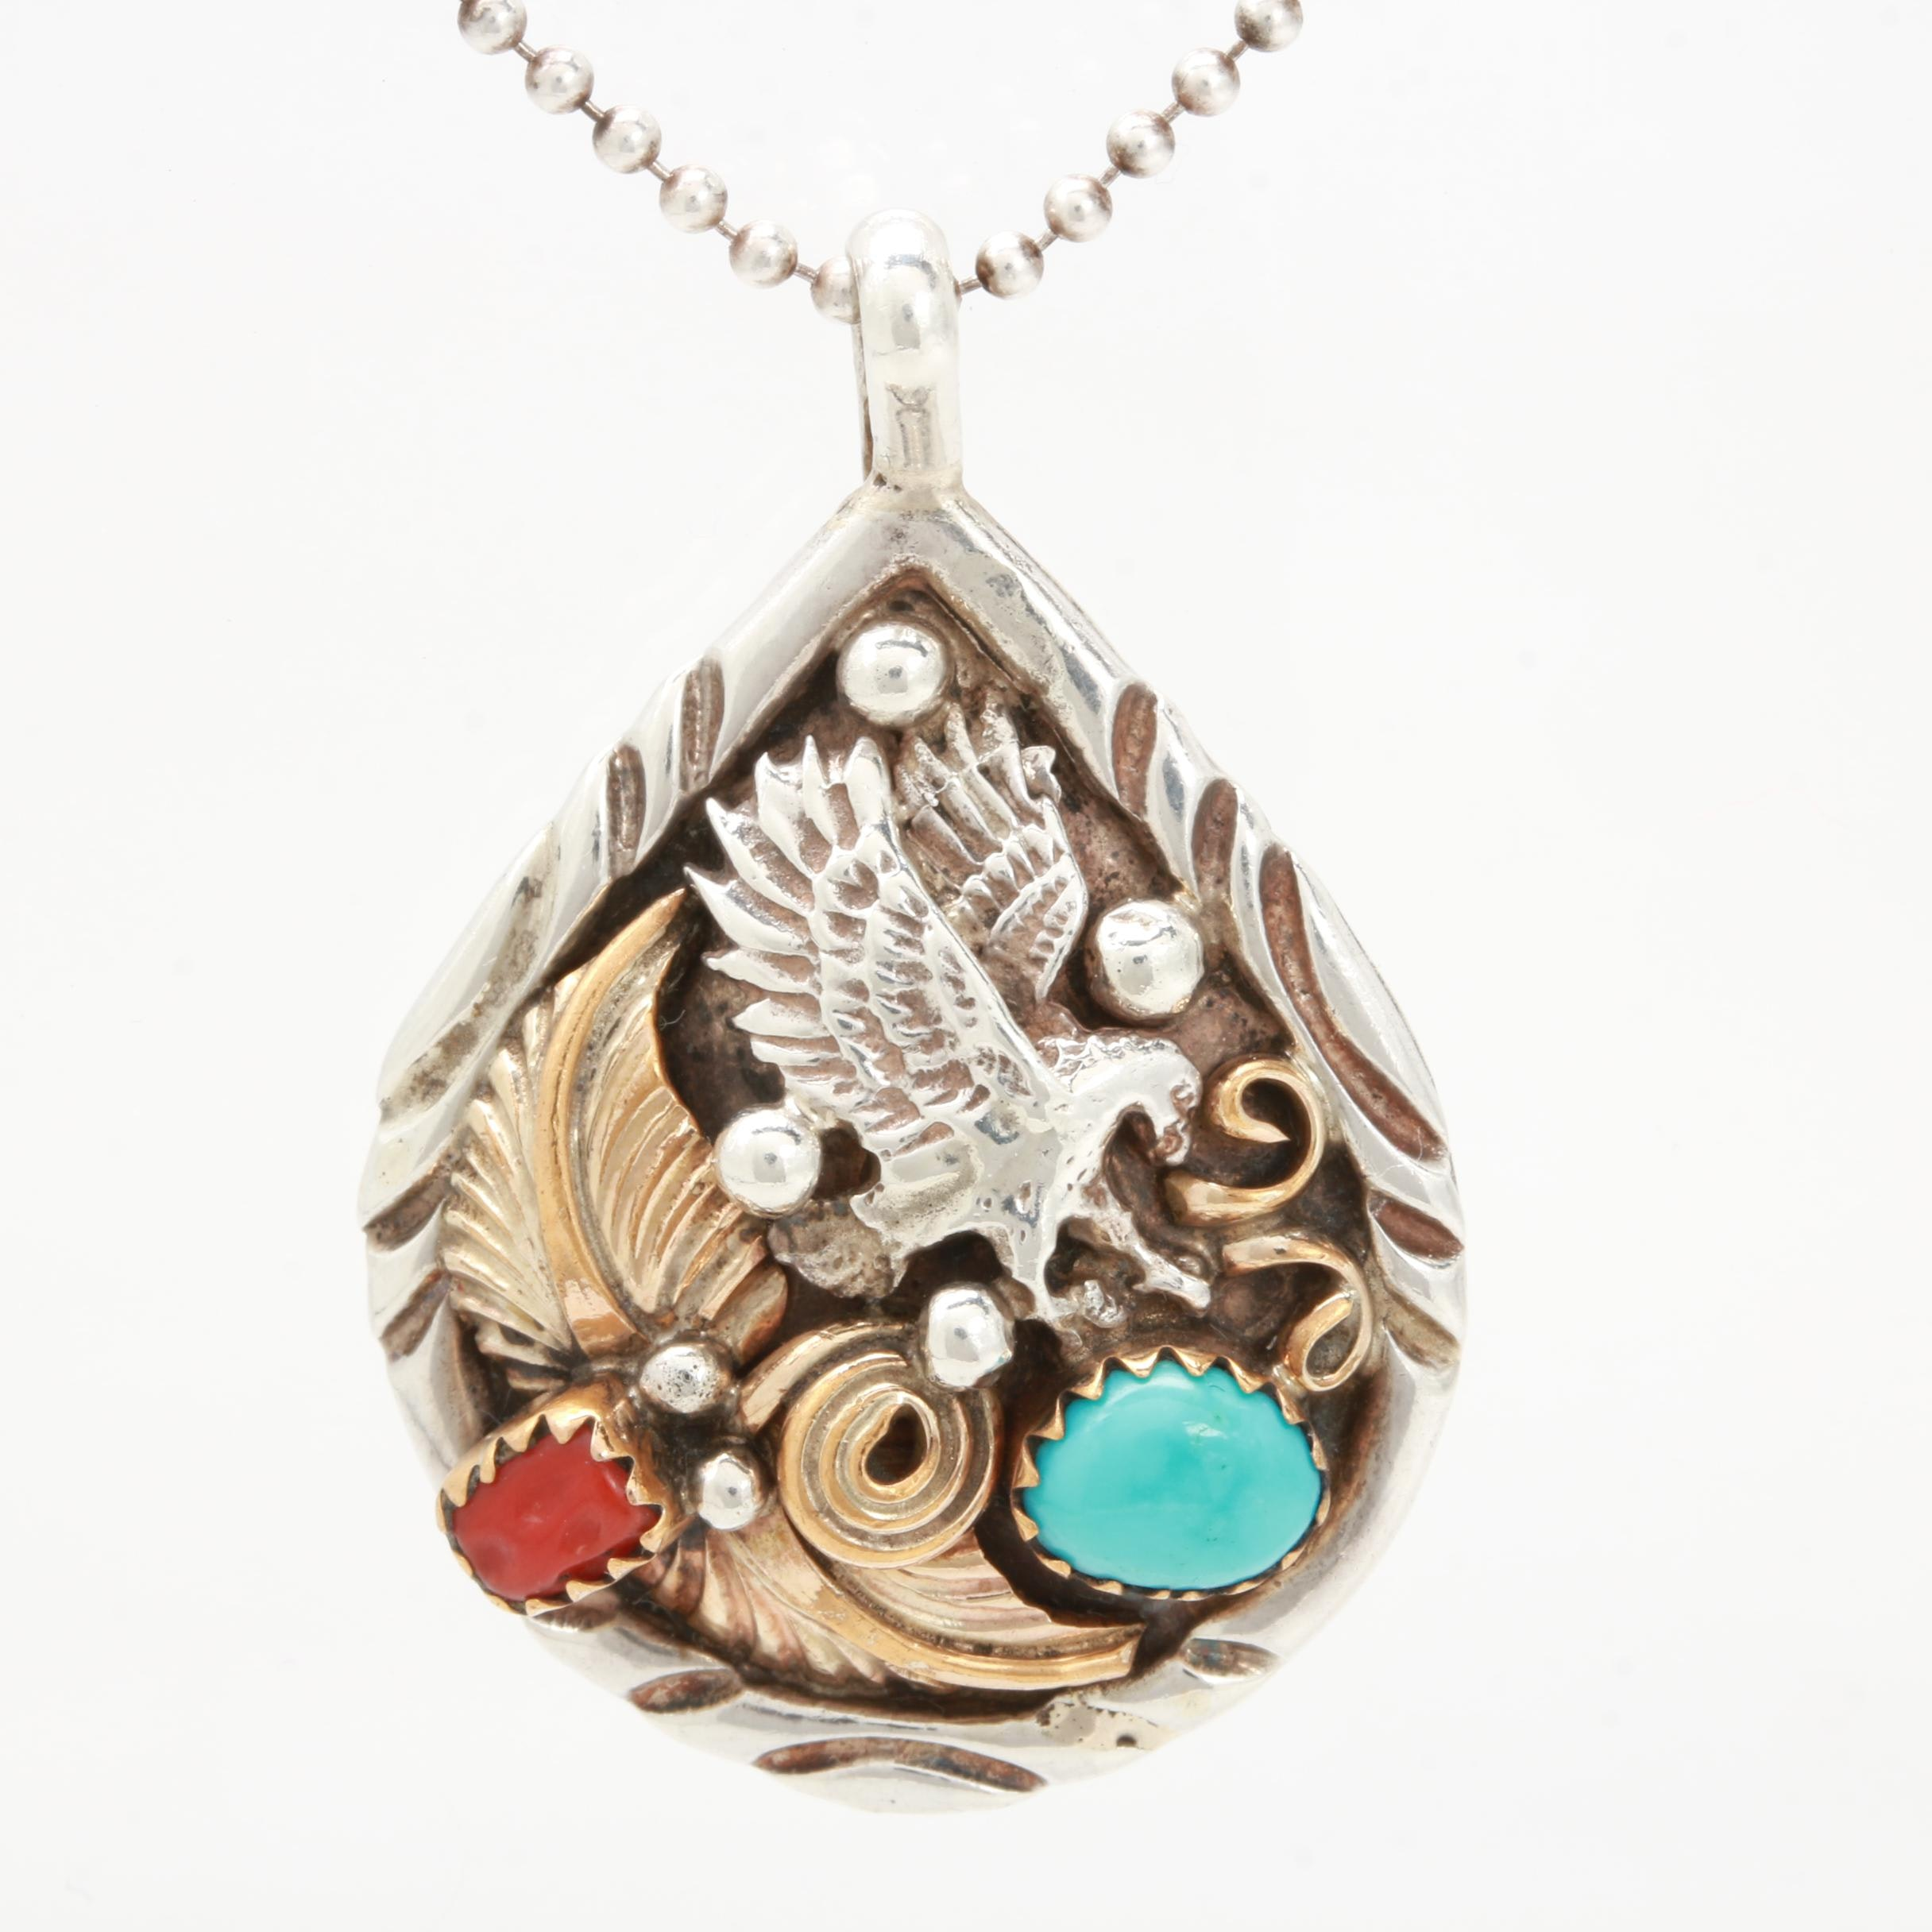 Benjamin Piaso Navajo Diné Sterling Silver Coral and Turquoise Pendent On Chain